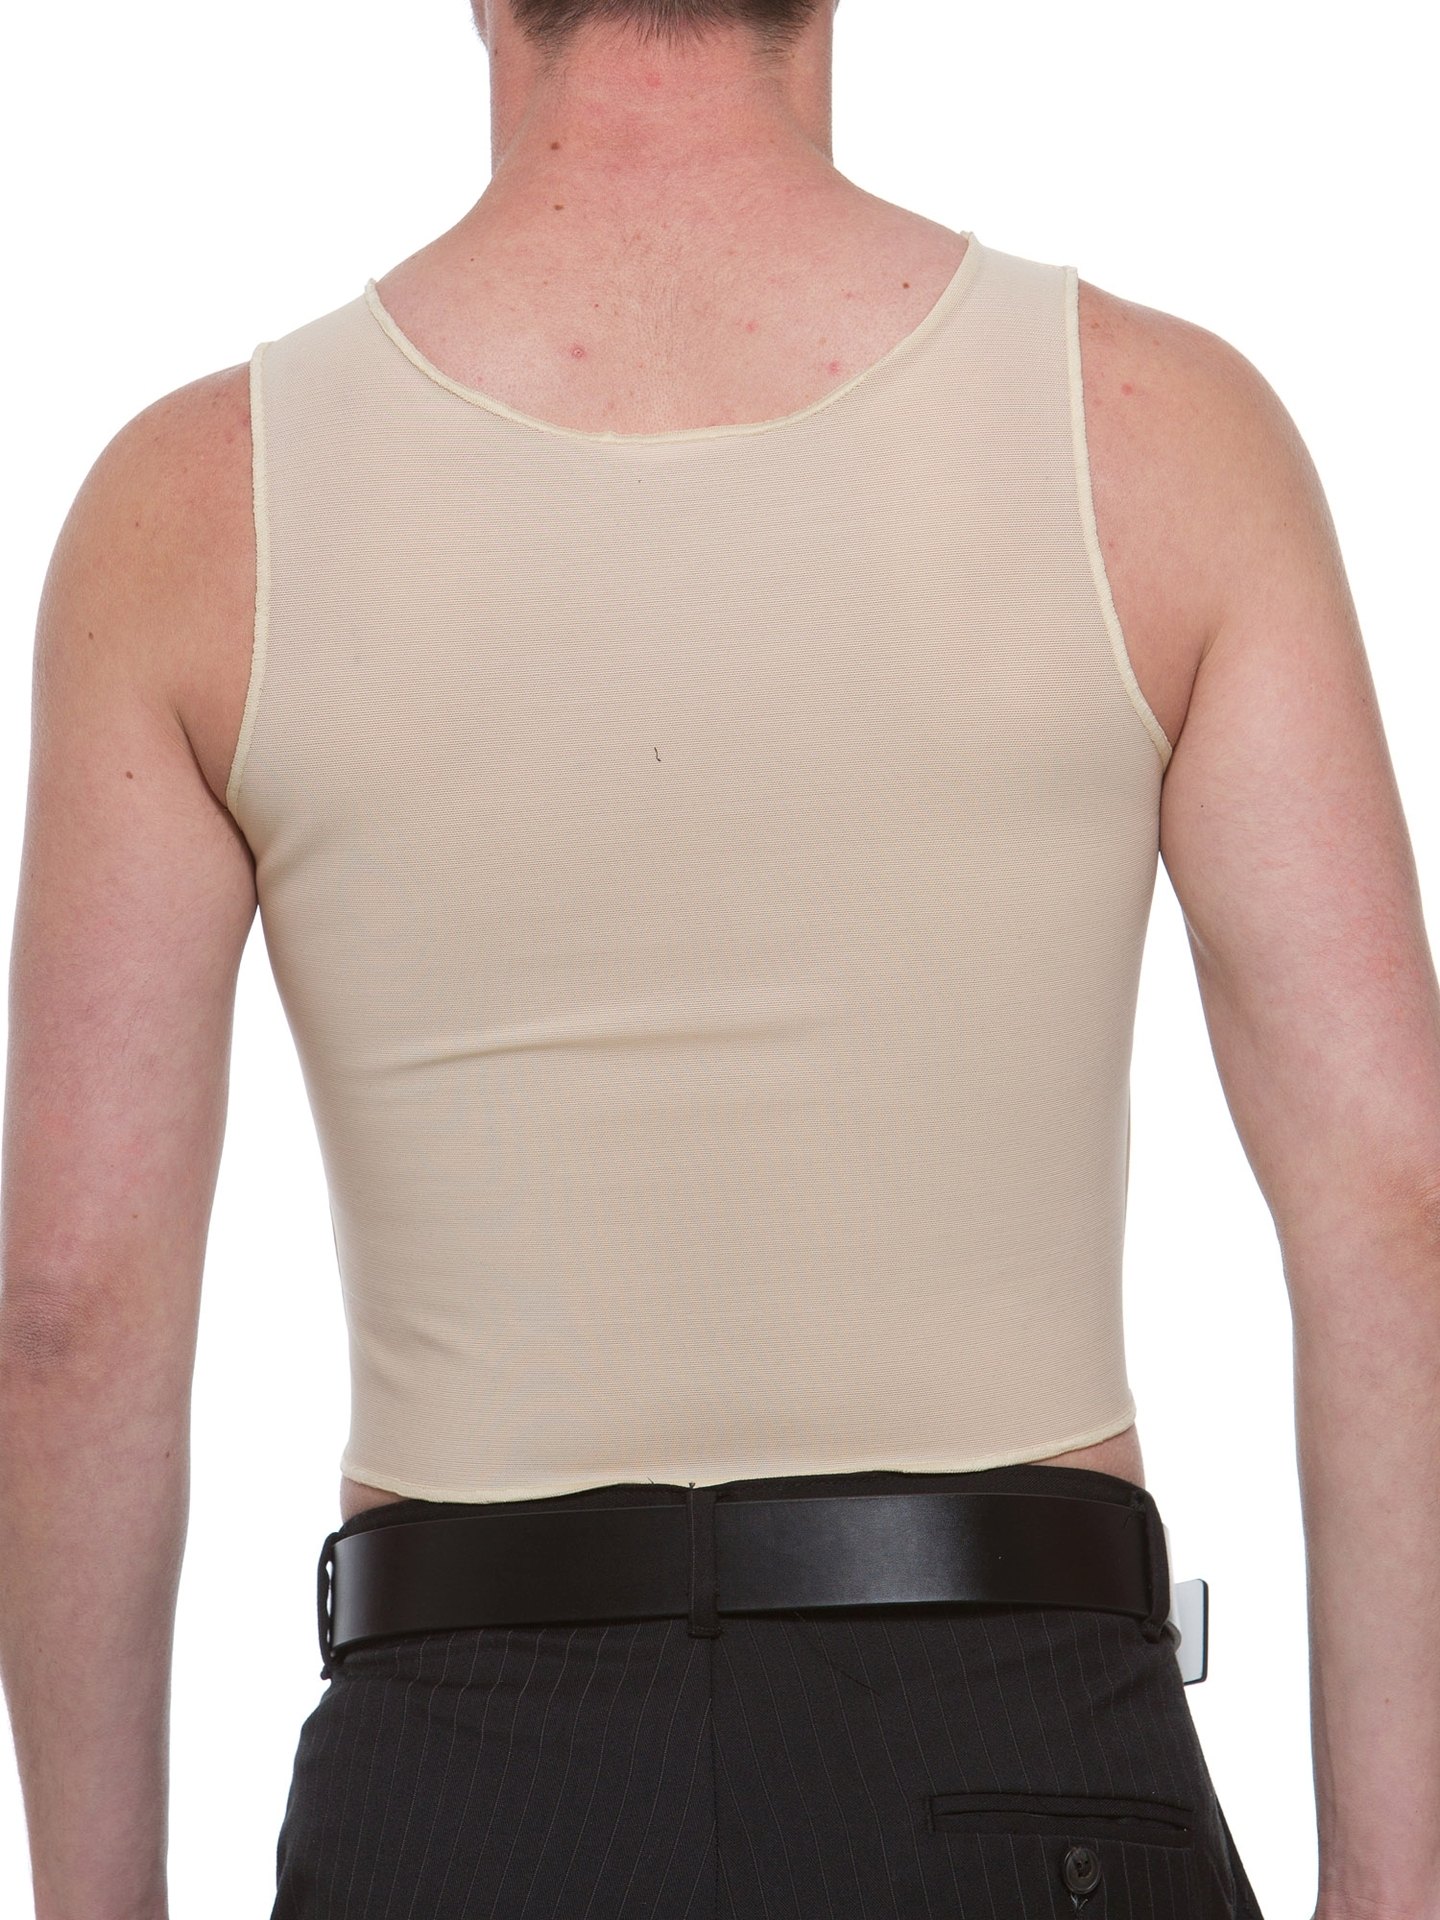 Picture of Tri-top Chest Binder